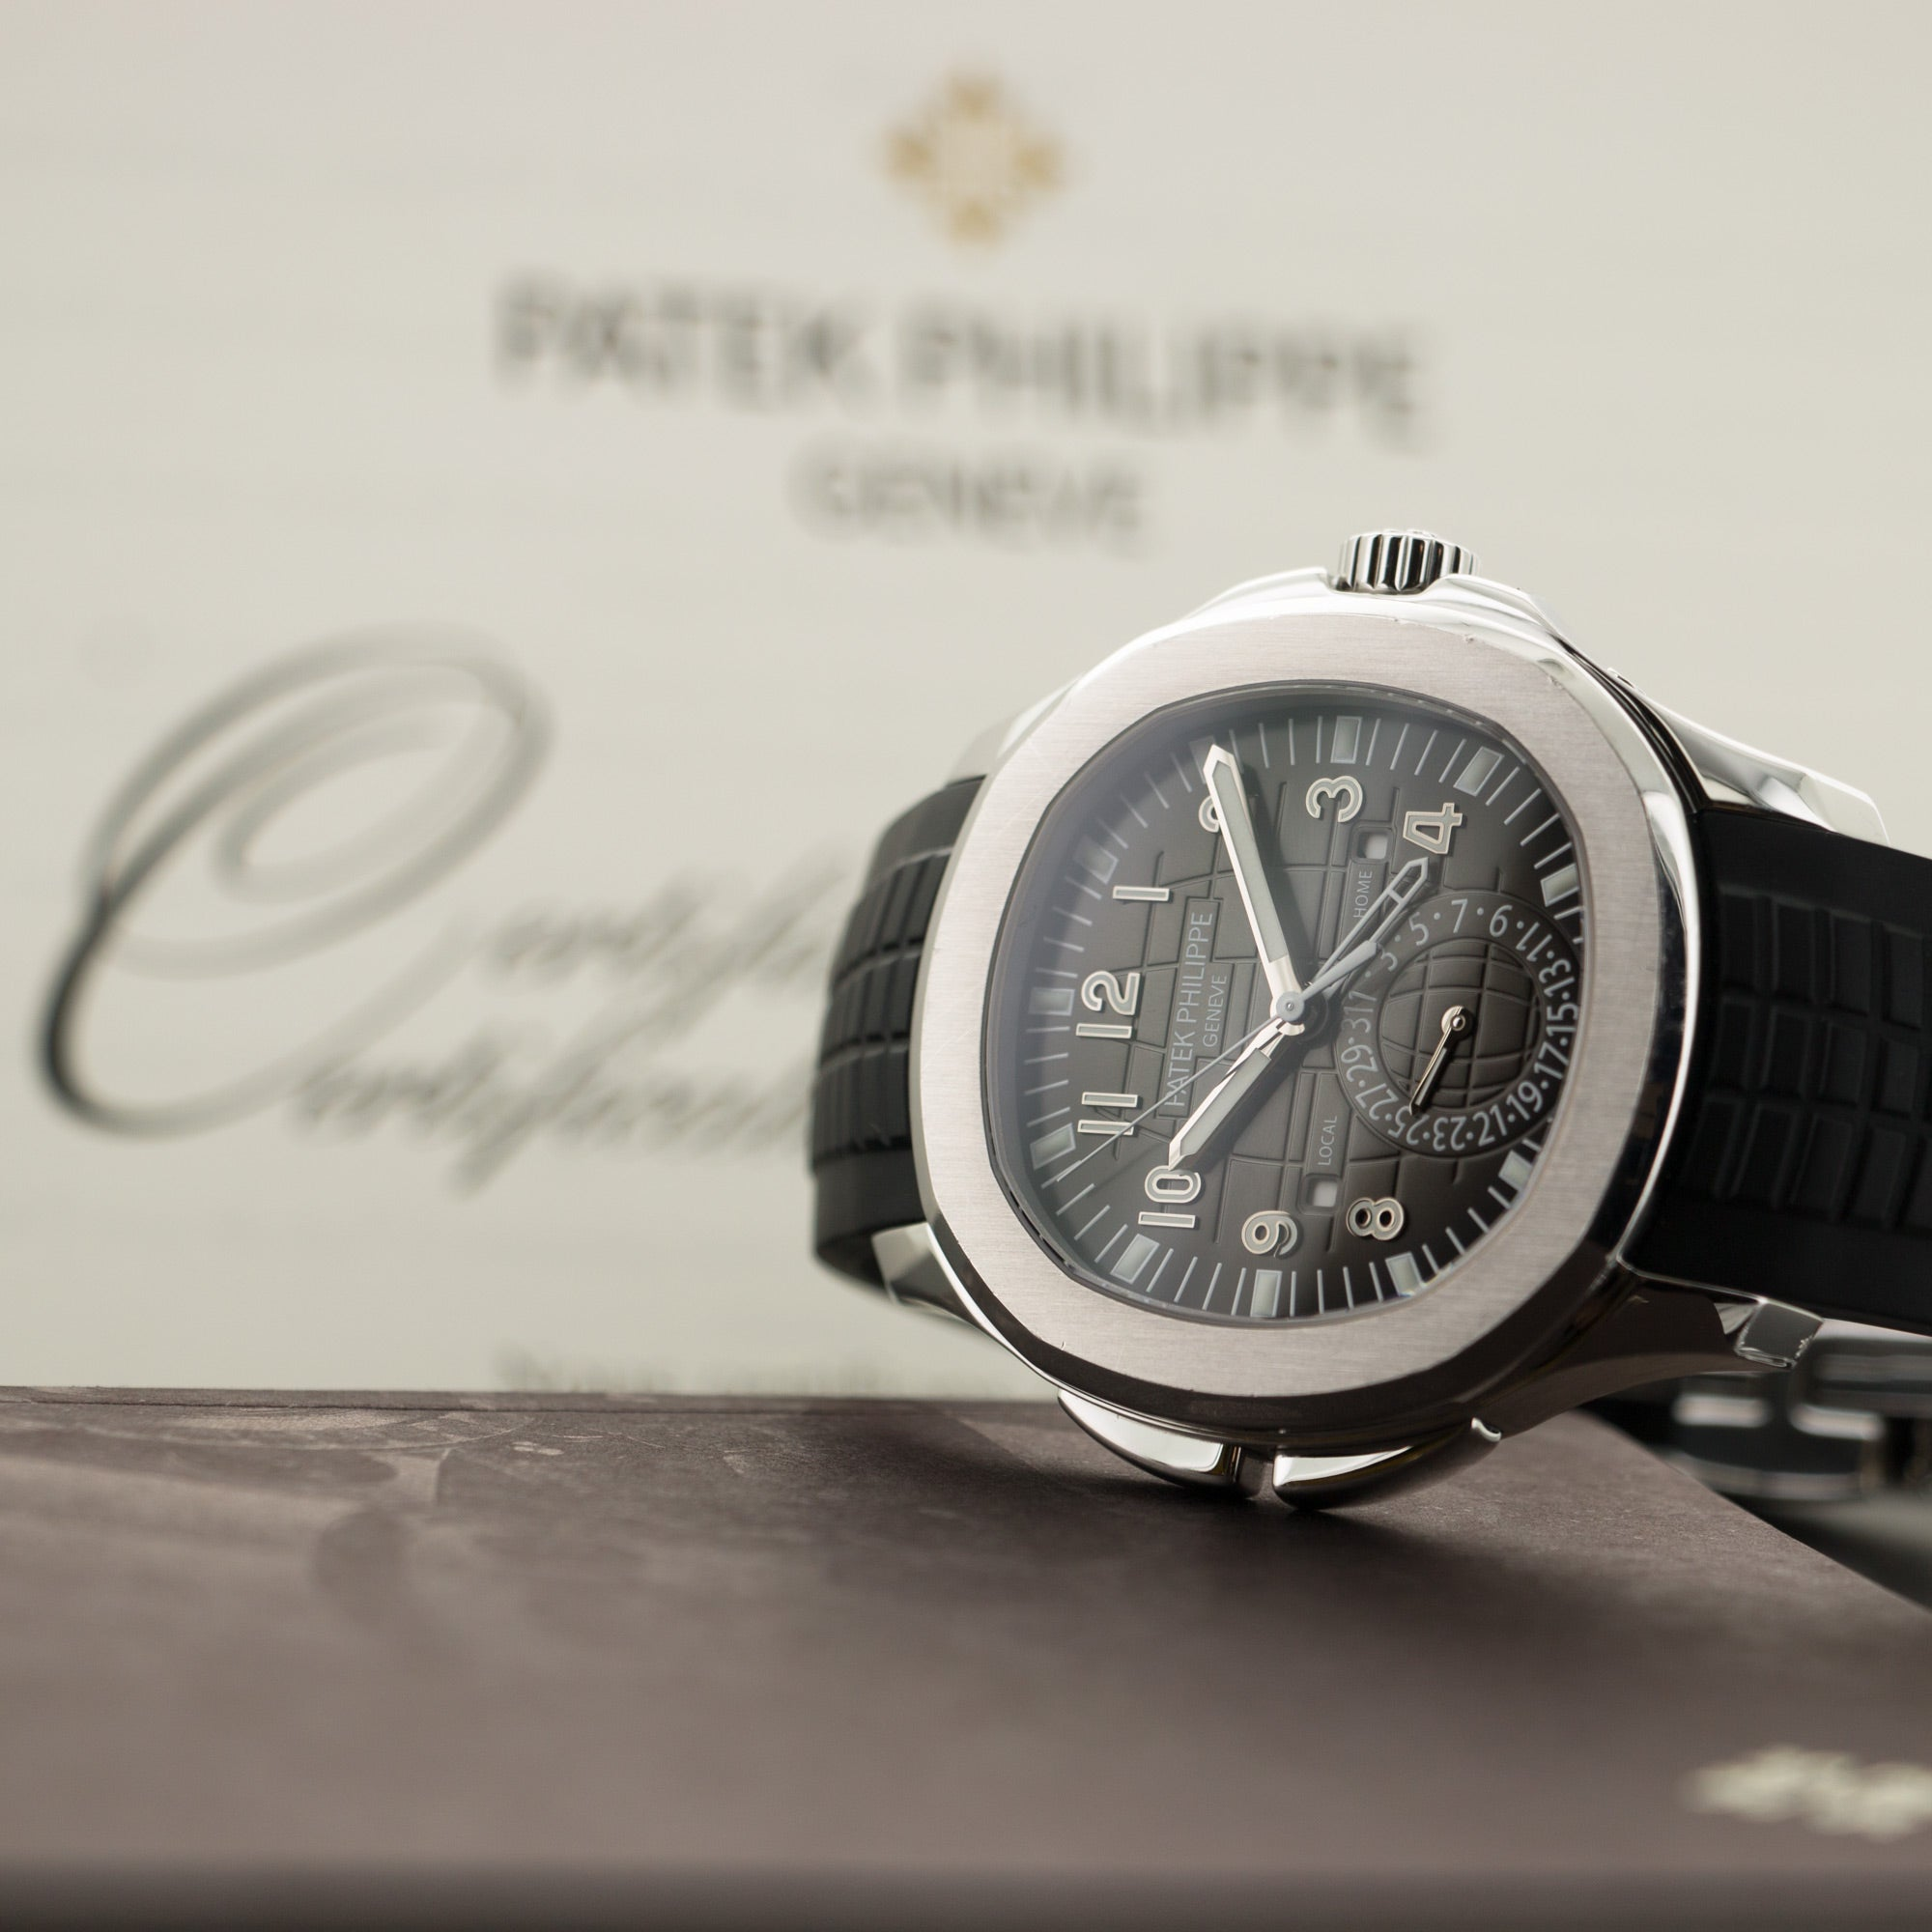 Patek Philippe Aquanaut 5164a Steel  Overall Mint Original Condition Gents Steel Black 40.8mm Automatic 2016 Rubber Strap Original Box and Certificate